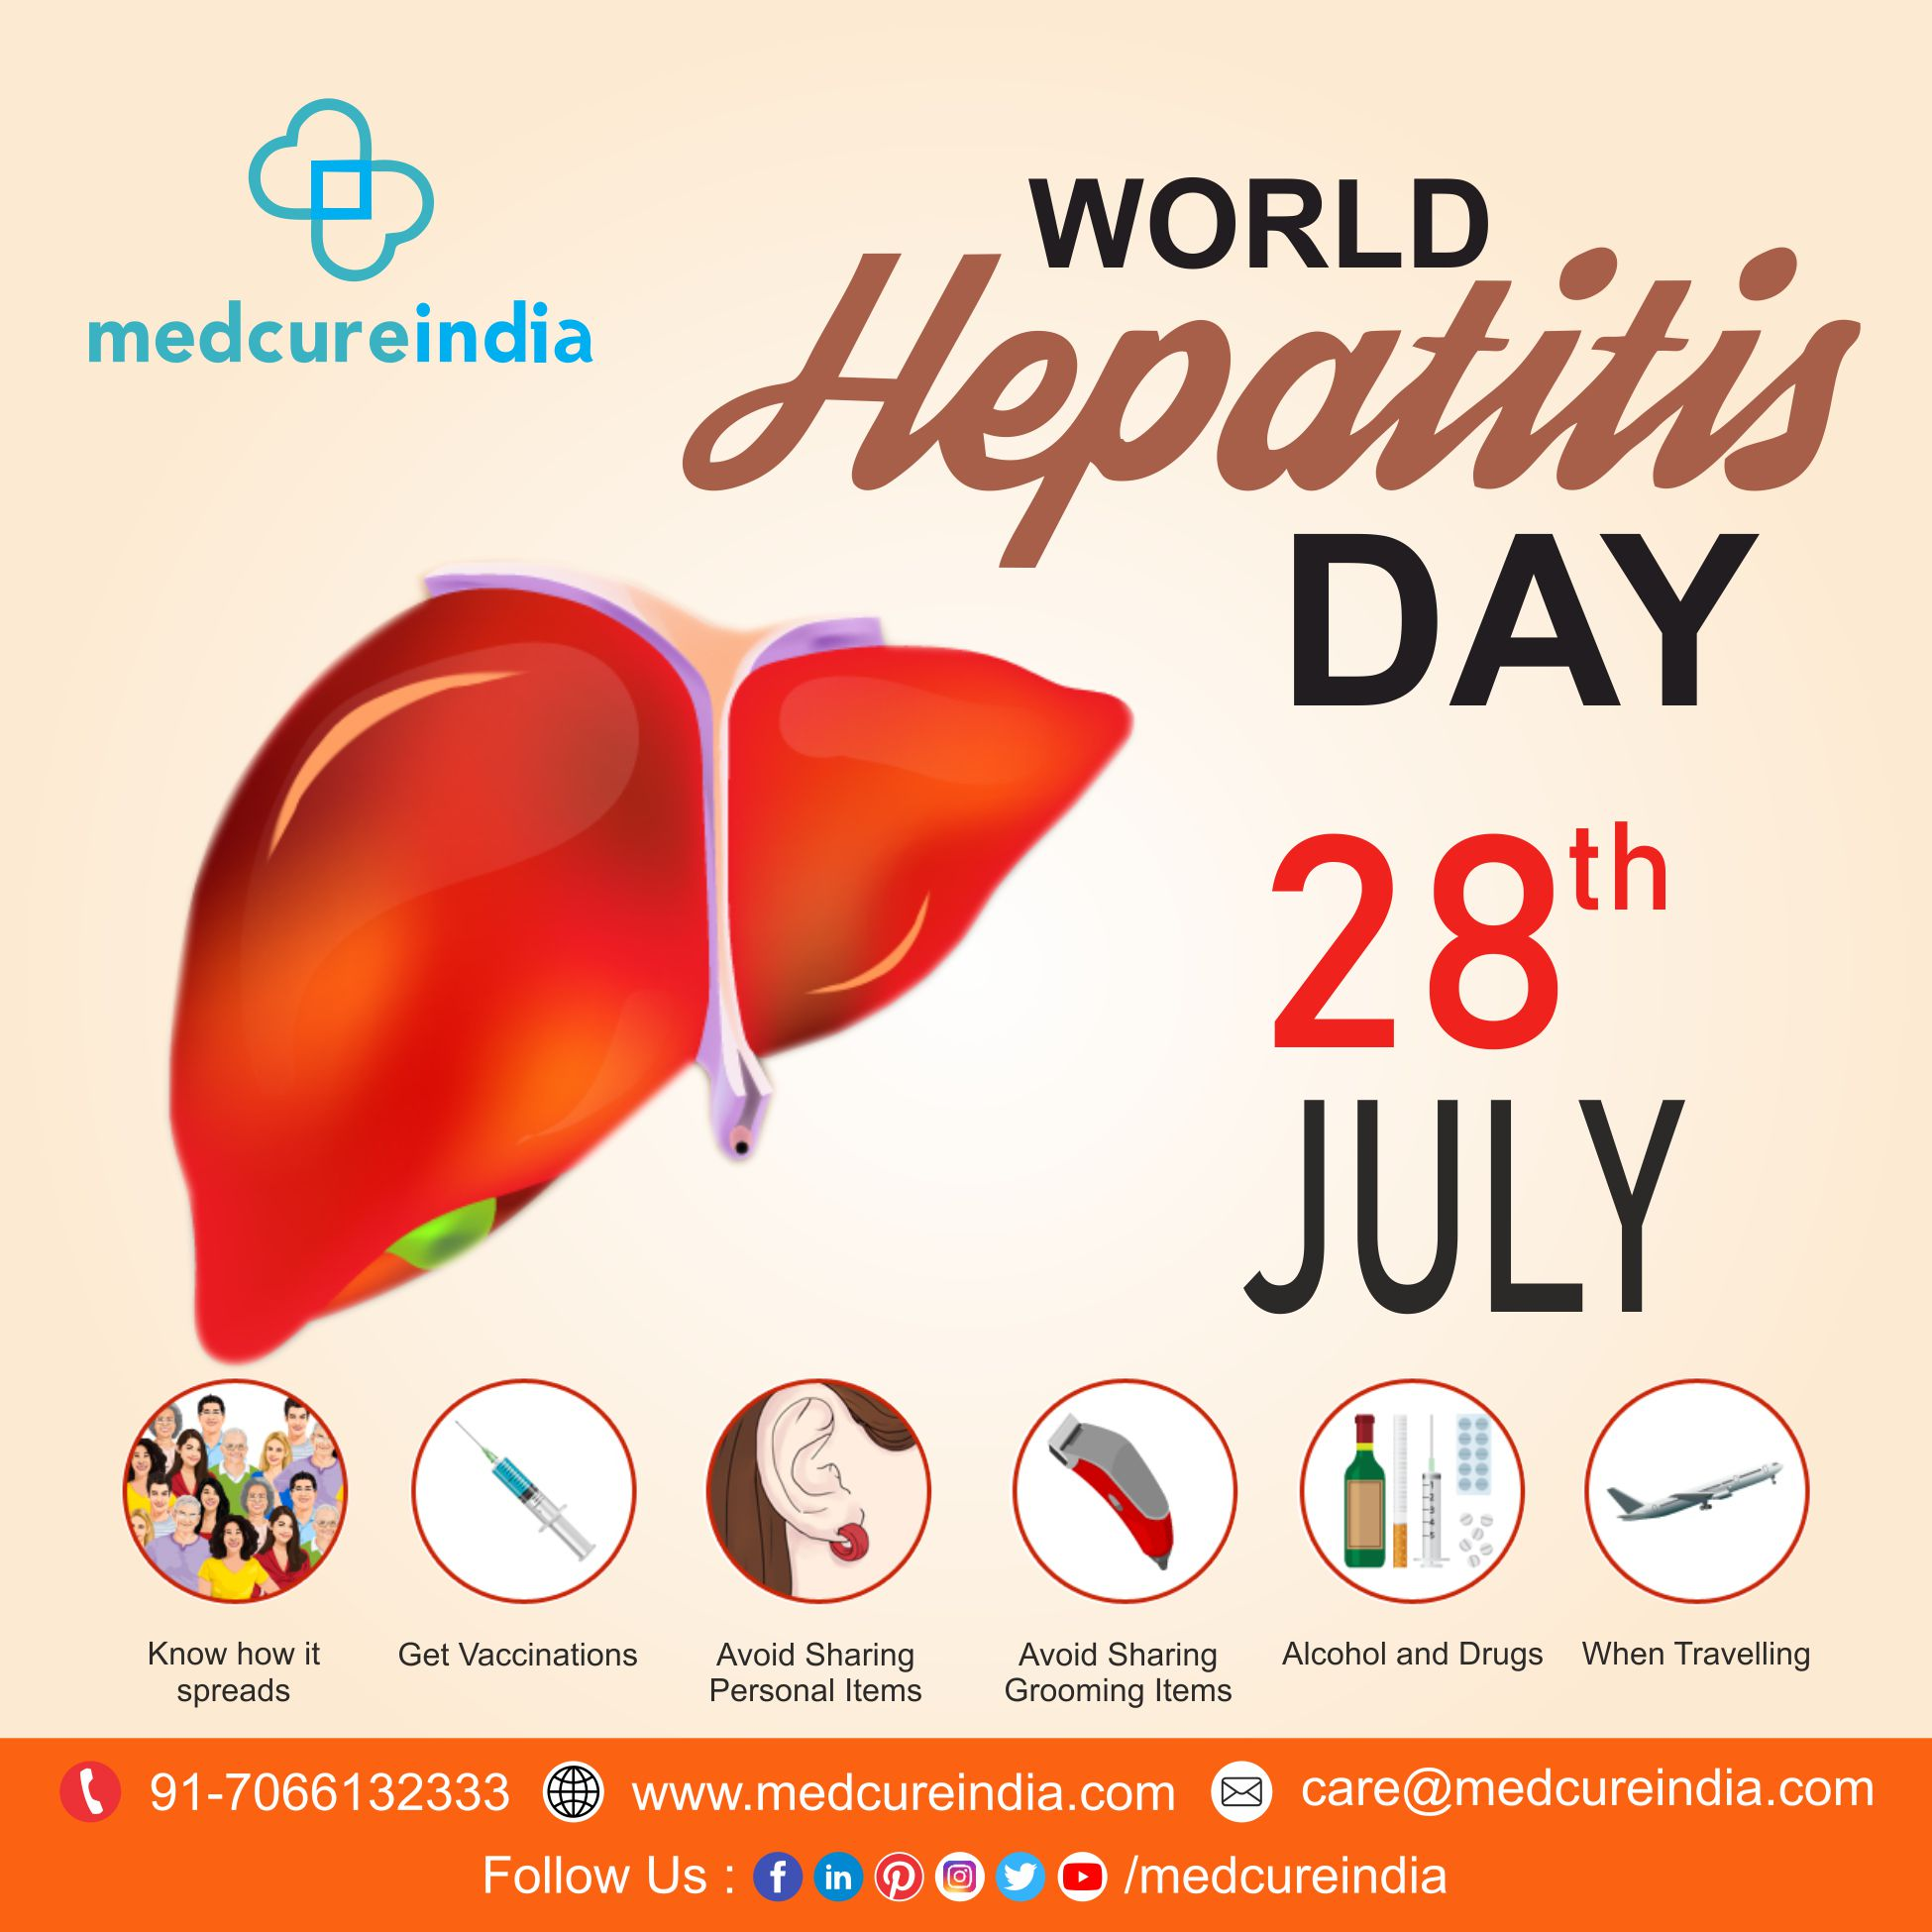 #WorldHepatitisDay is annually held on July 28 to promote awareness of hepatitis, a disease that affects the #liver.  #FindtheMissingMillions #SaturdayMotivation #SaturdayThoughts #health  #LiverProblems #hepatitisA #hepatitisB #hepatitisC  #Hepatitis #hospital #surgeons https://t.co/kvF4bM4gP9